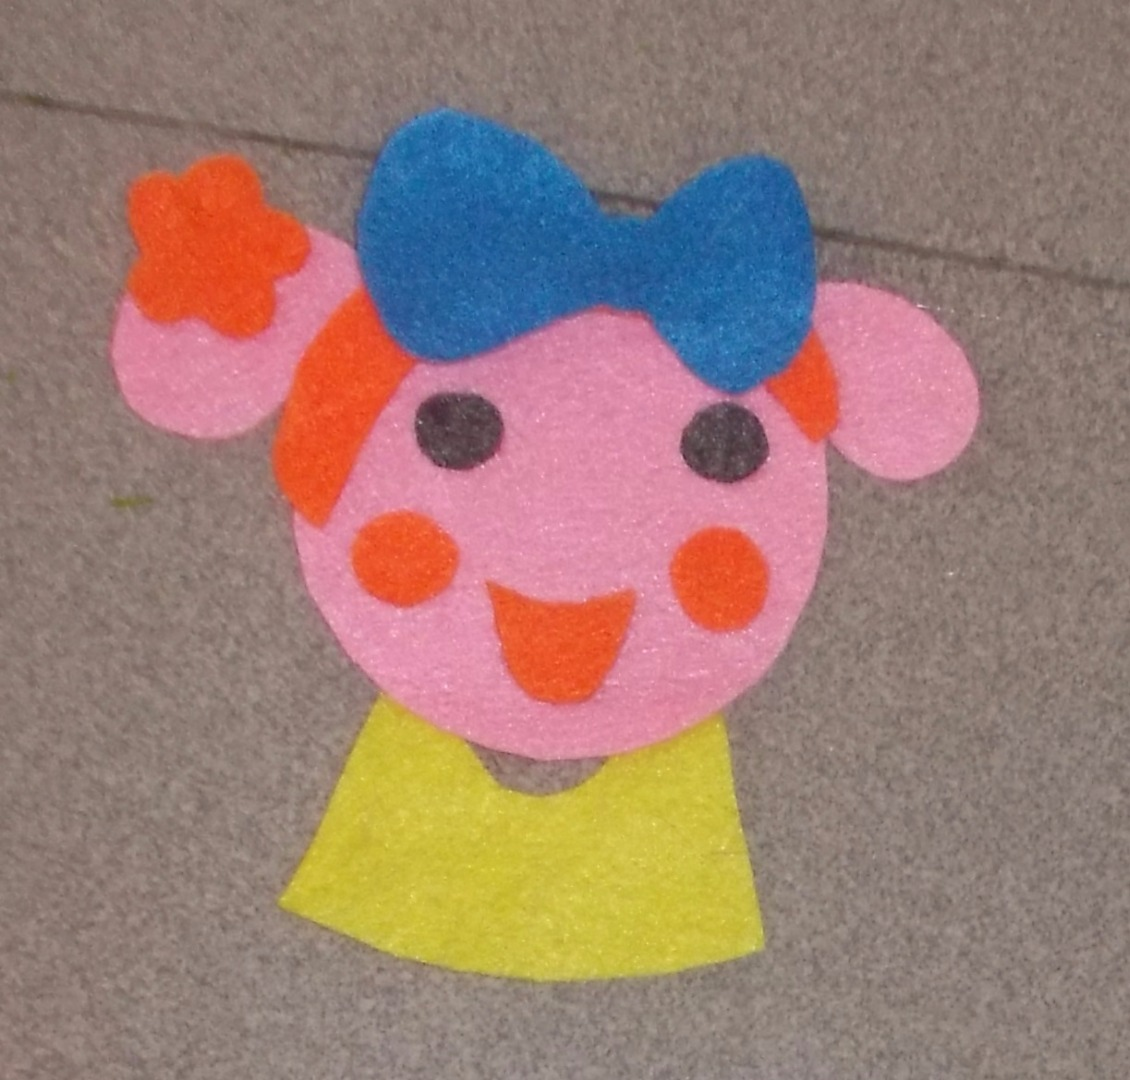 Picture of Cut the Cheeks, Mouth and Dress. Glue Them Like the Picture.